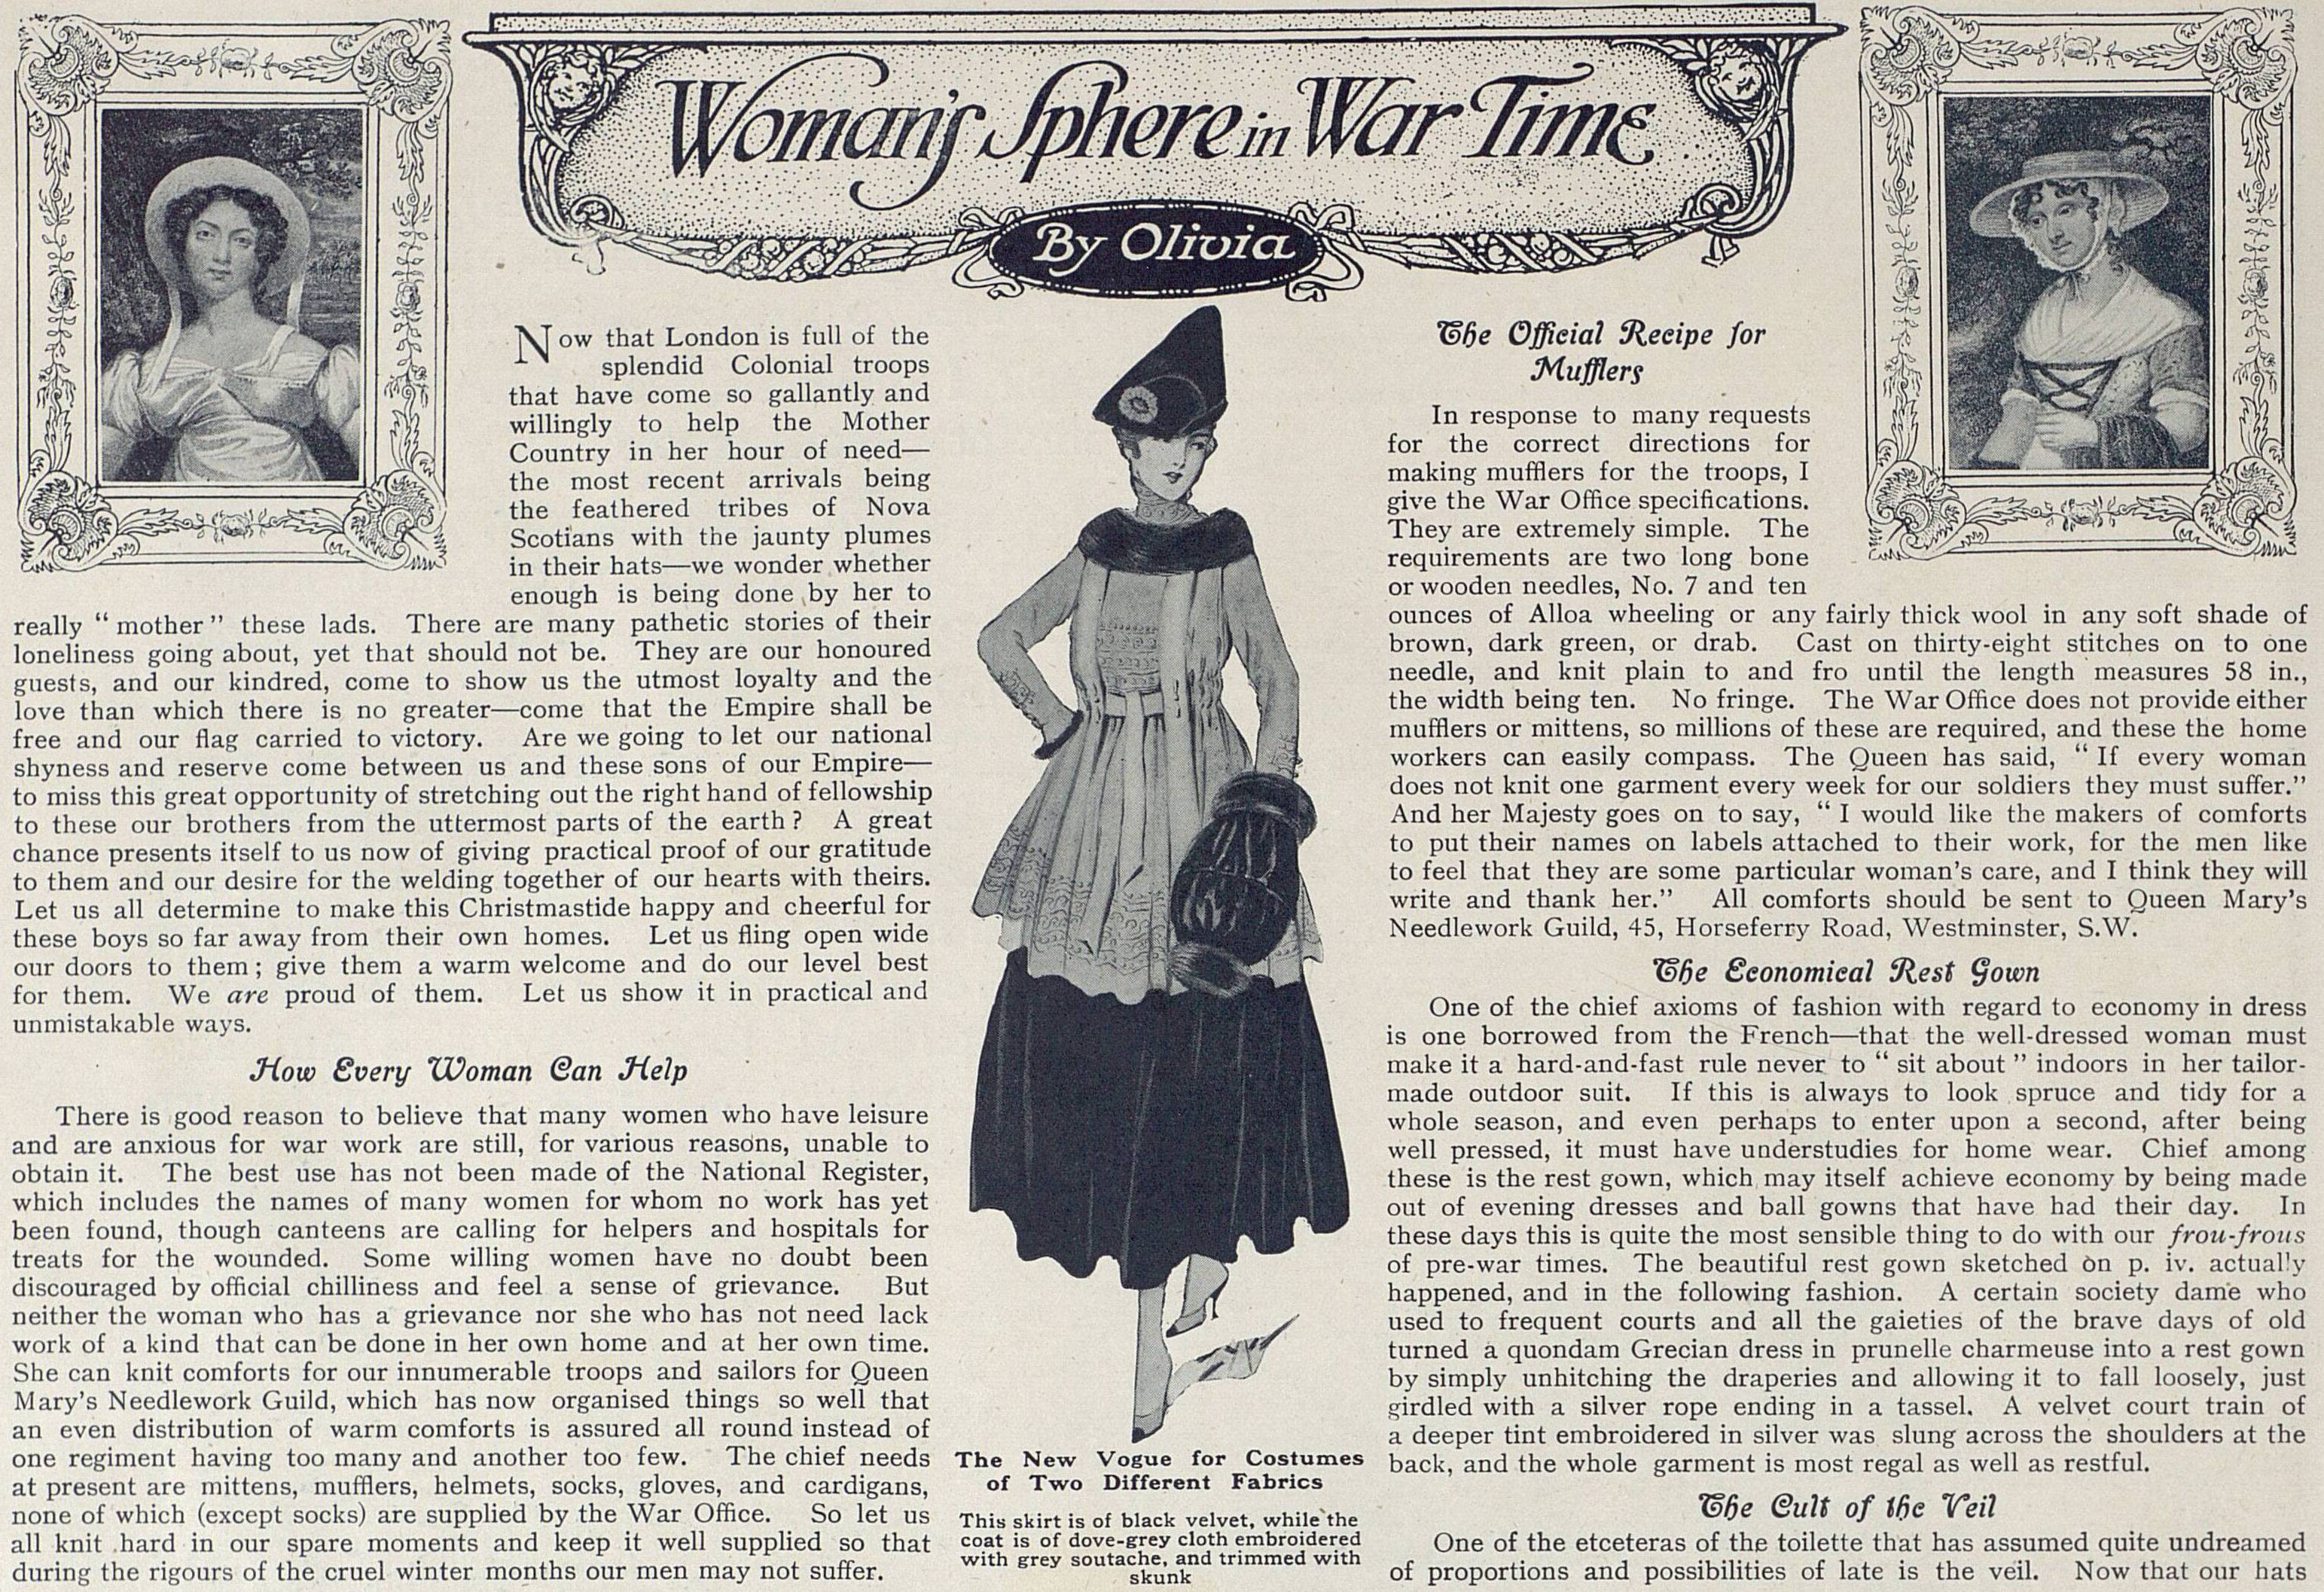 WomansSphereInWarTime_25Nov1916